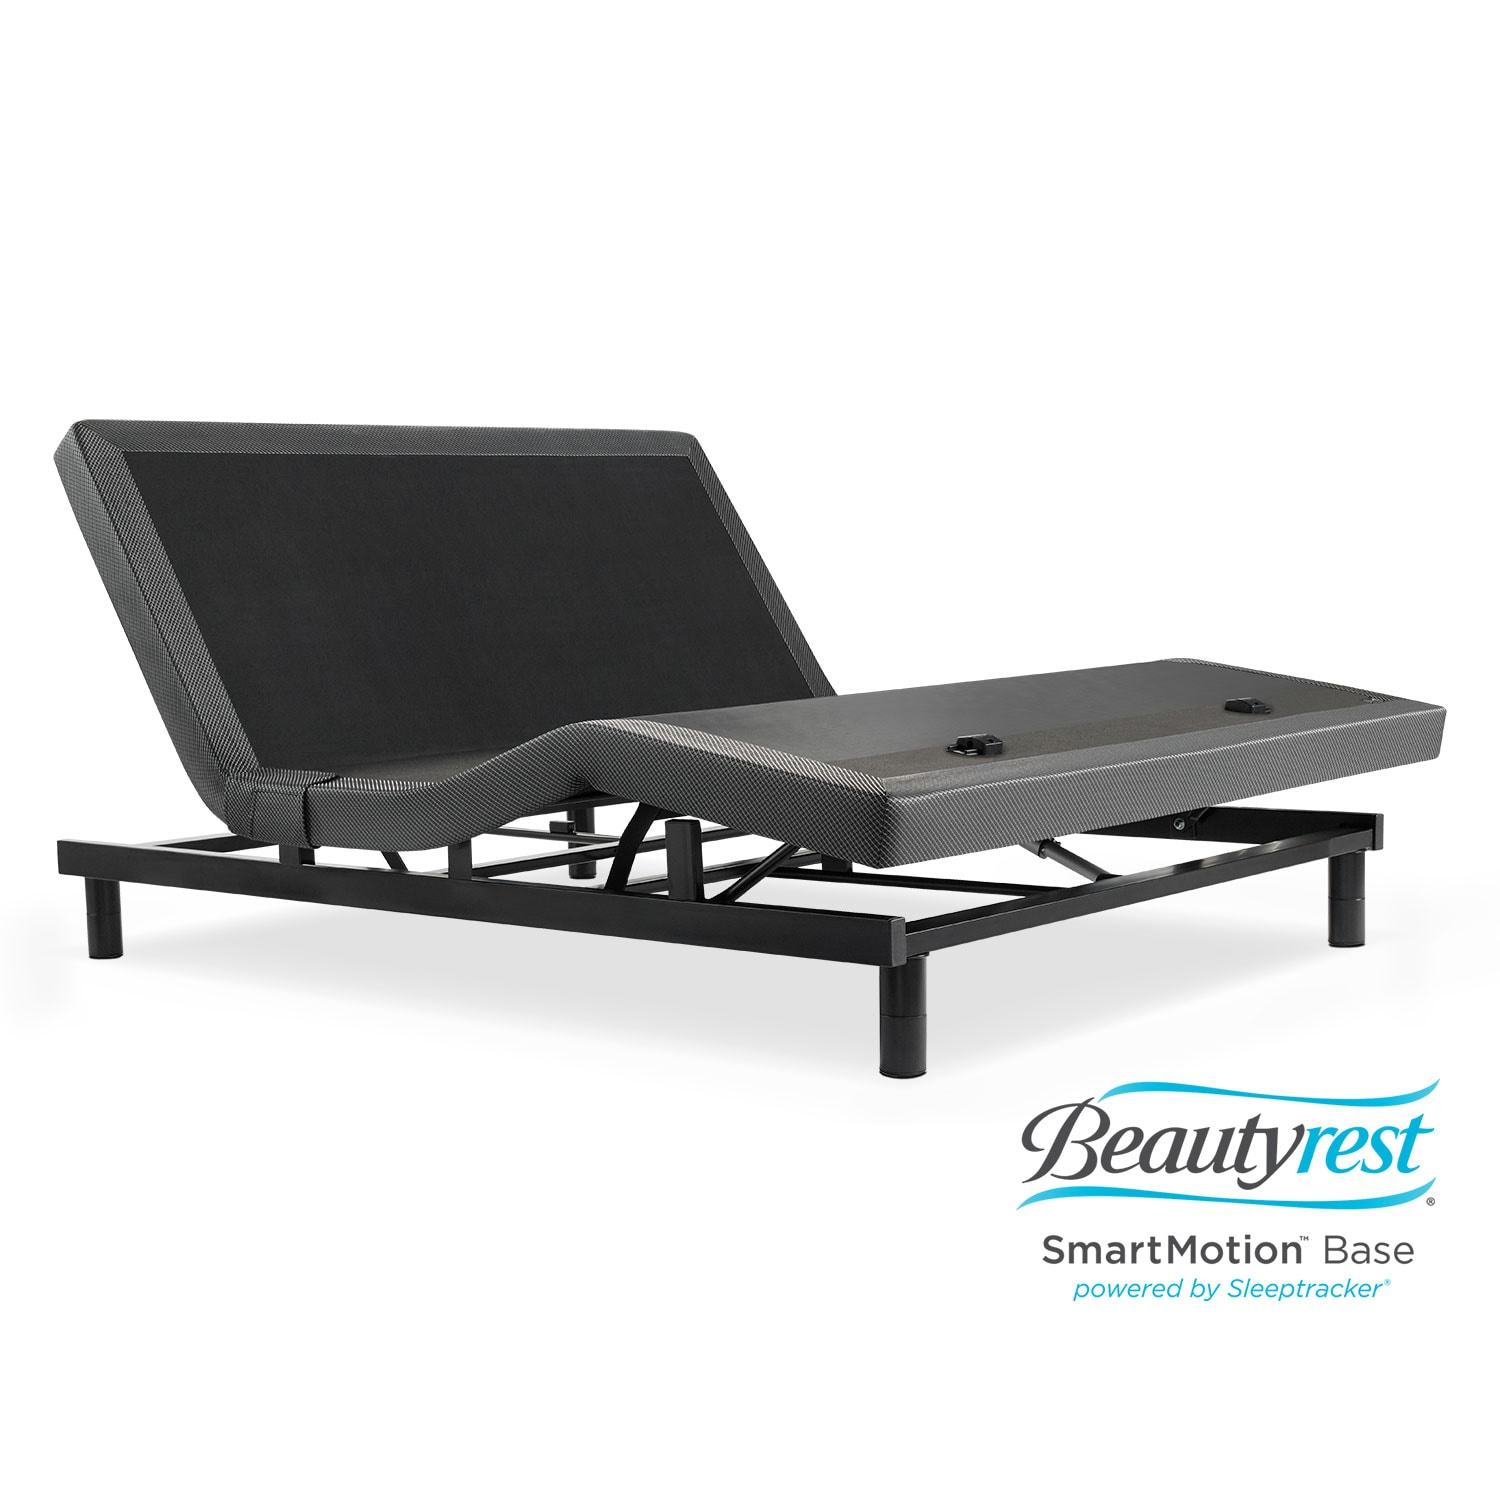 Beautyrest SmartMotion 1.0 King Split Adjustable Base